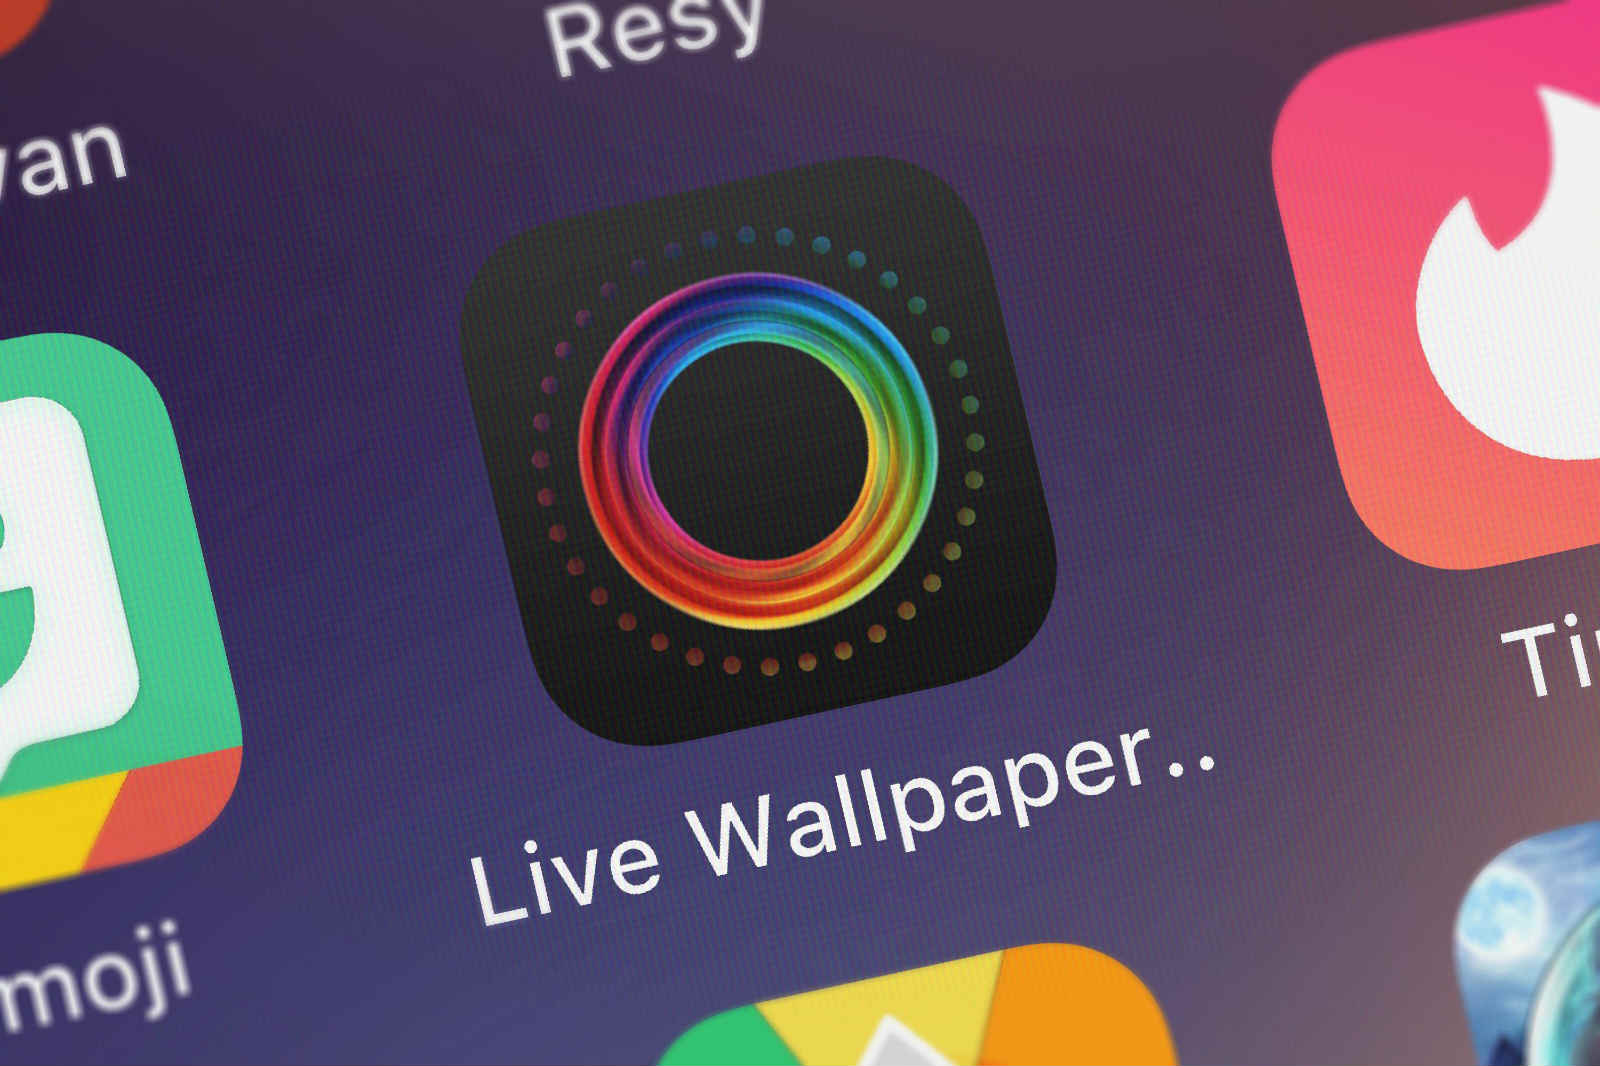 12 Best Live Wallpaper Apps For Iphone Xs Xs Max 11 And 11 Pro Of 2020 Esr Blog